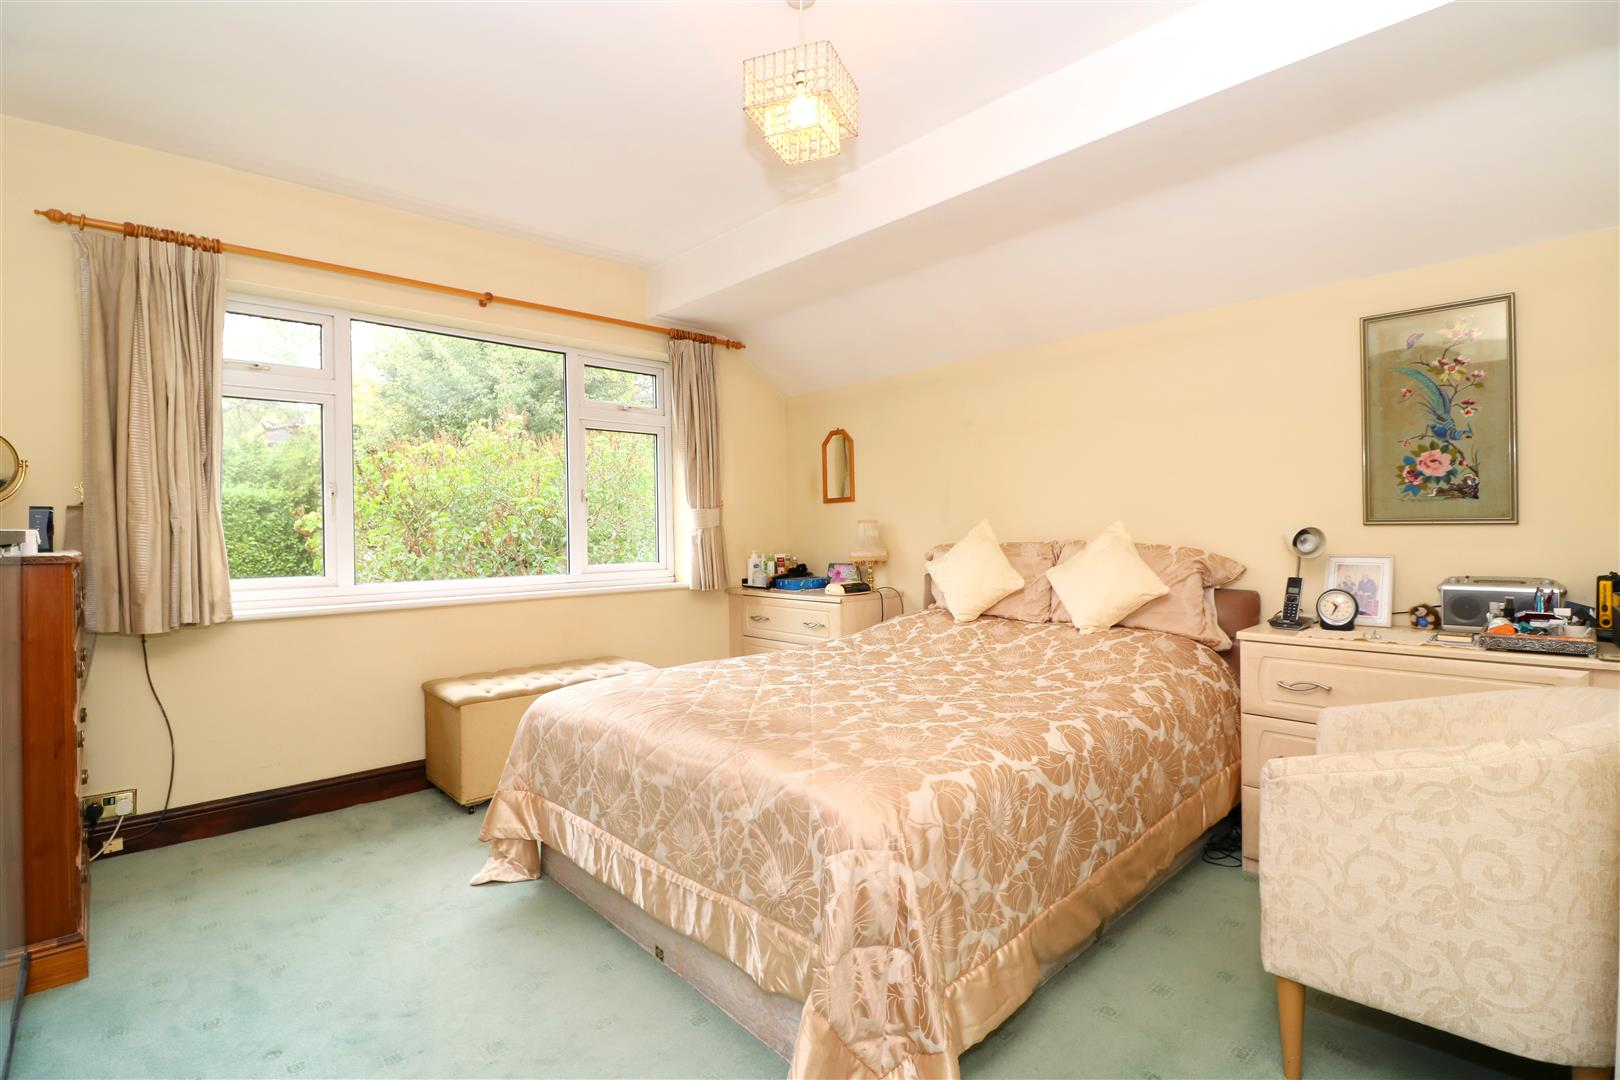 4 bed House for sale in Links Drive, Radlett - (Property Image 7)